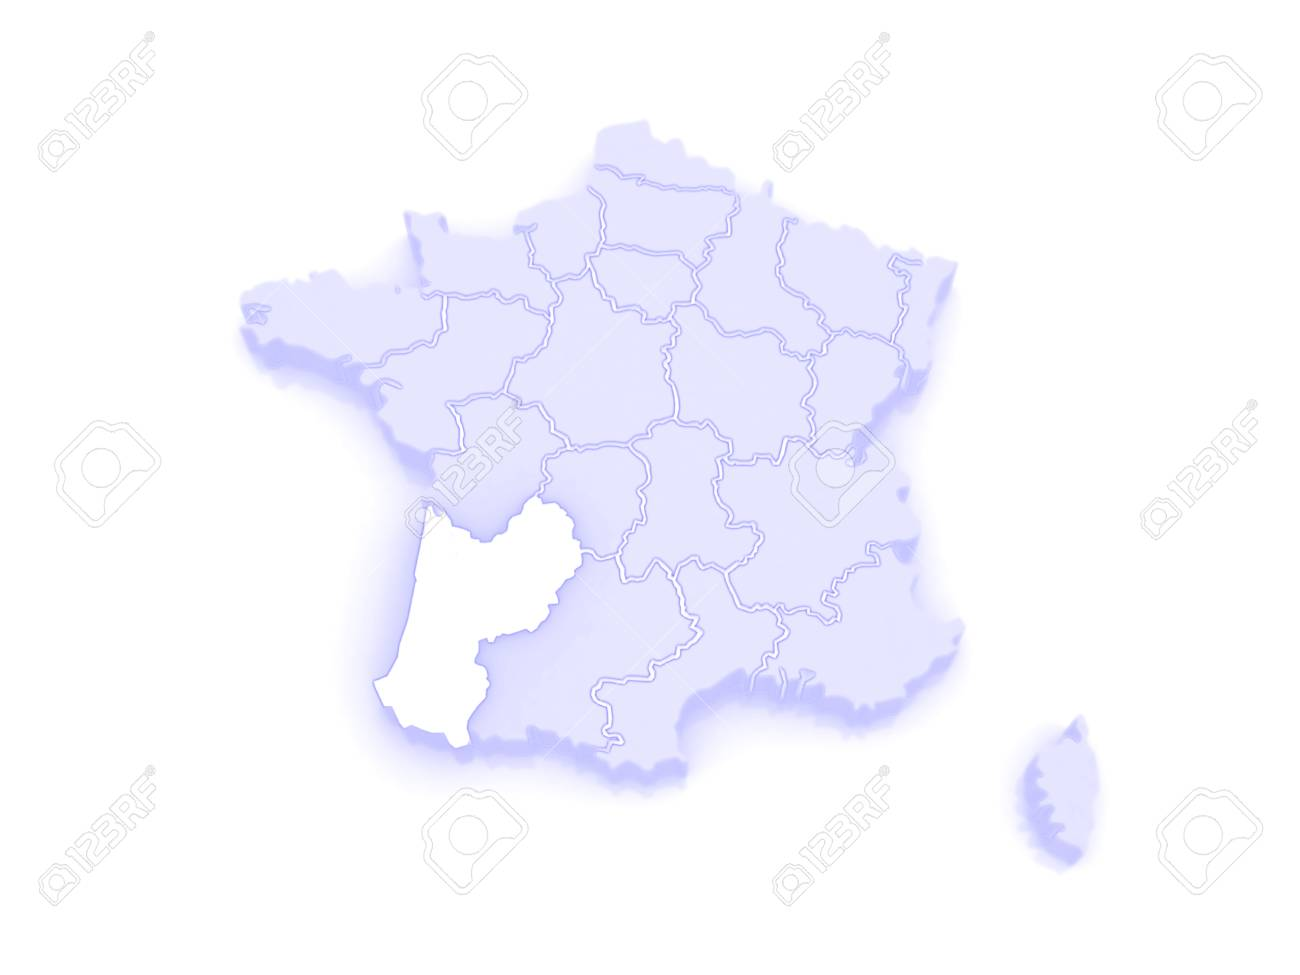 Map Of Aquitaine Region France 3d Stock Photo Picture And